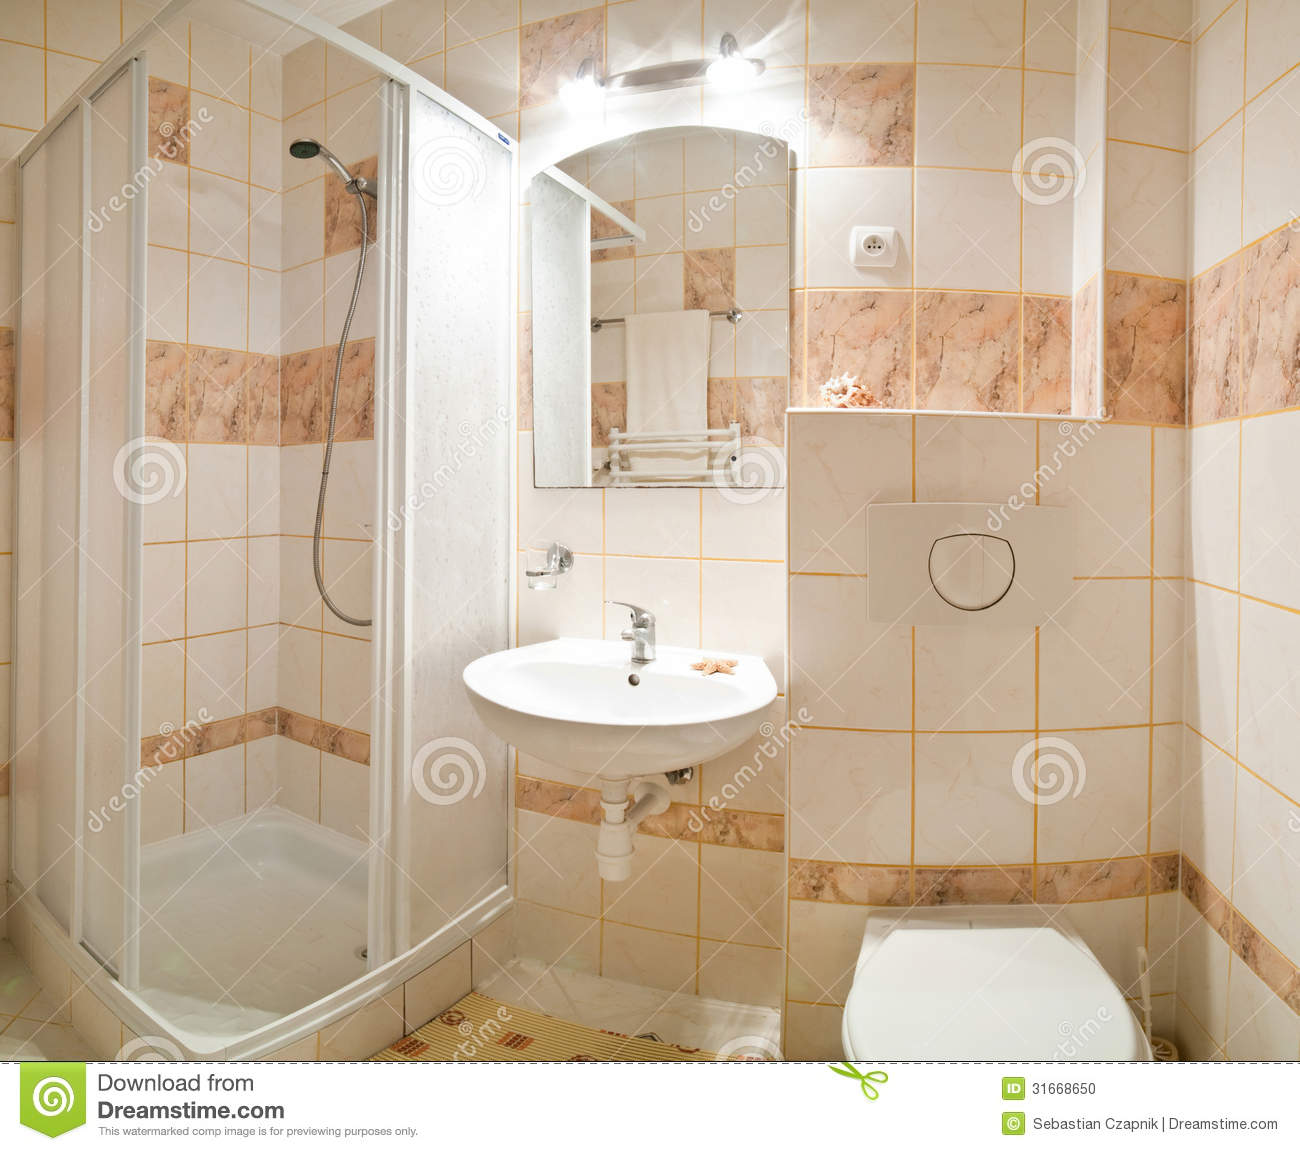 Beige Bathroom Stock Photo Image Of Tiled Tiles Home 31668650